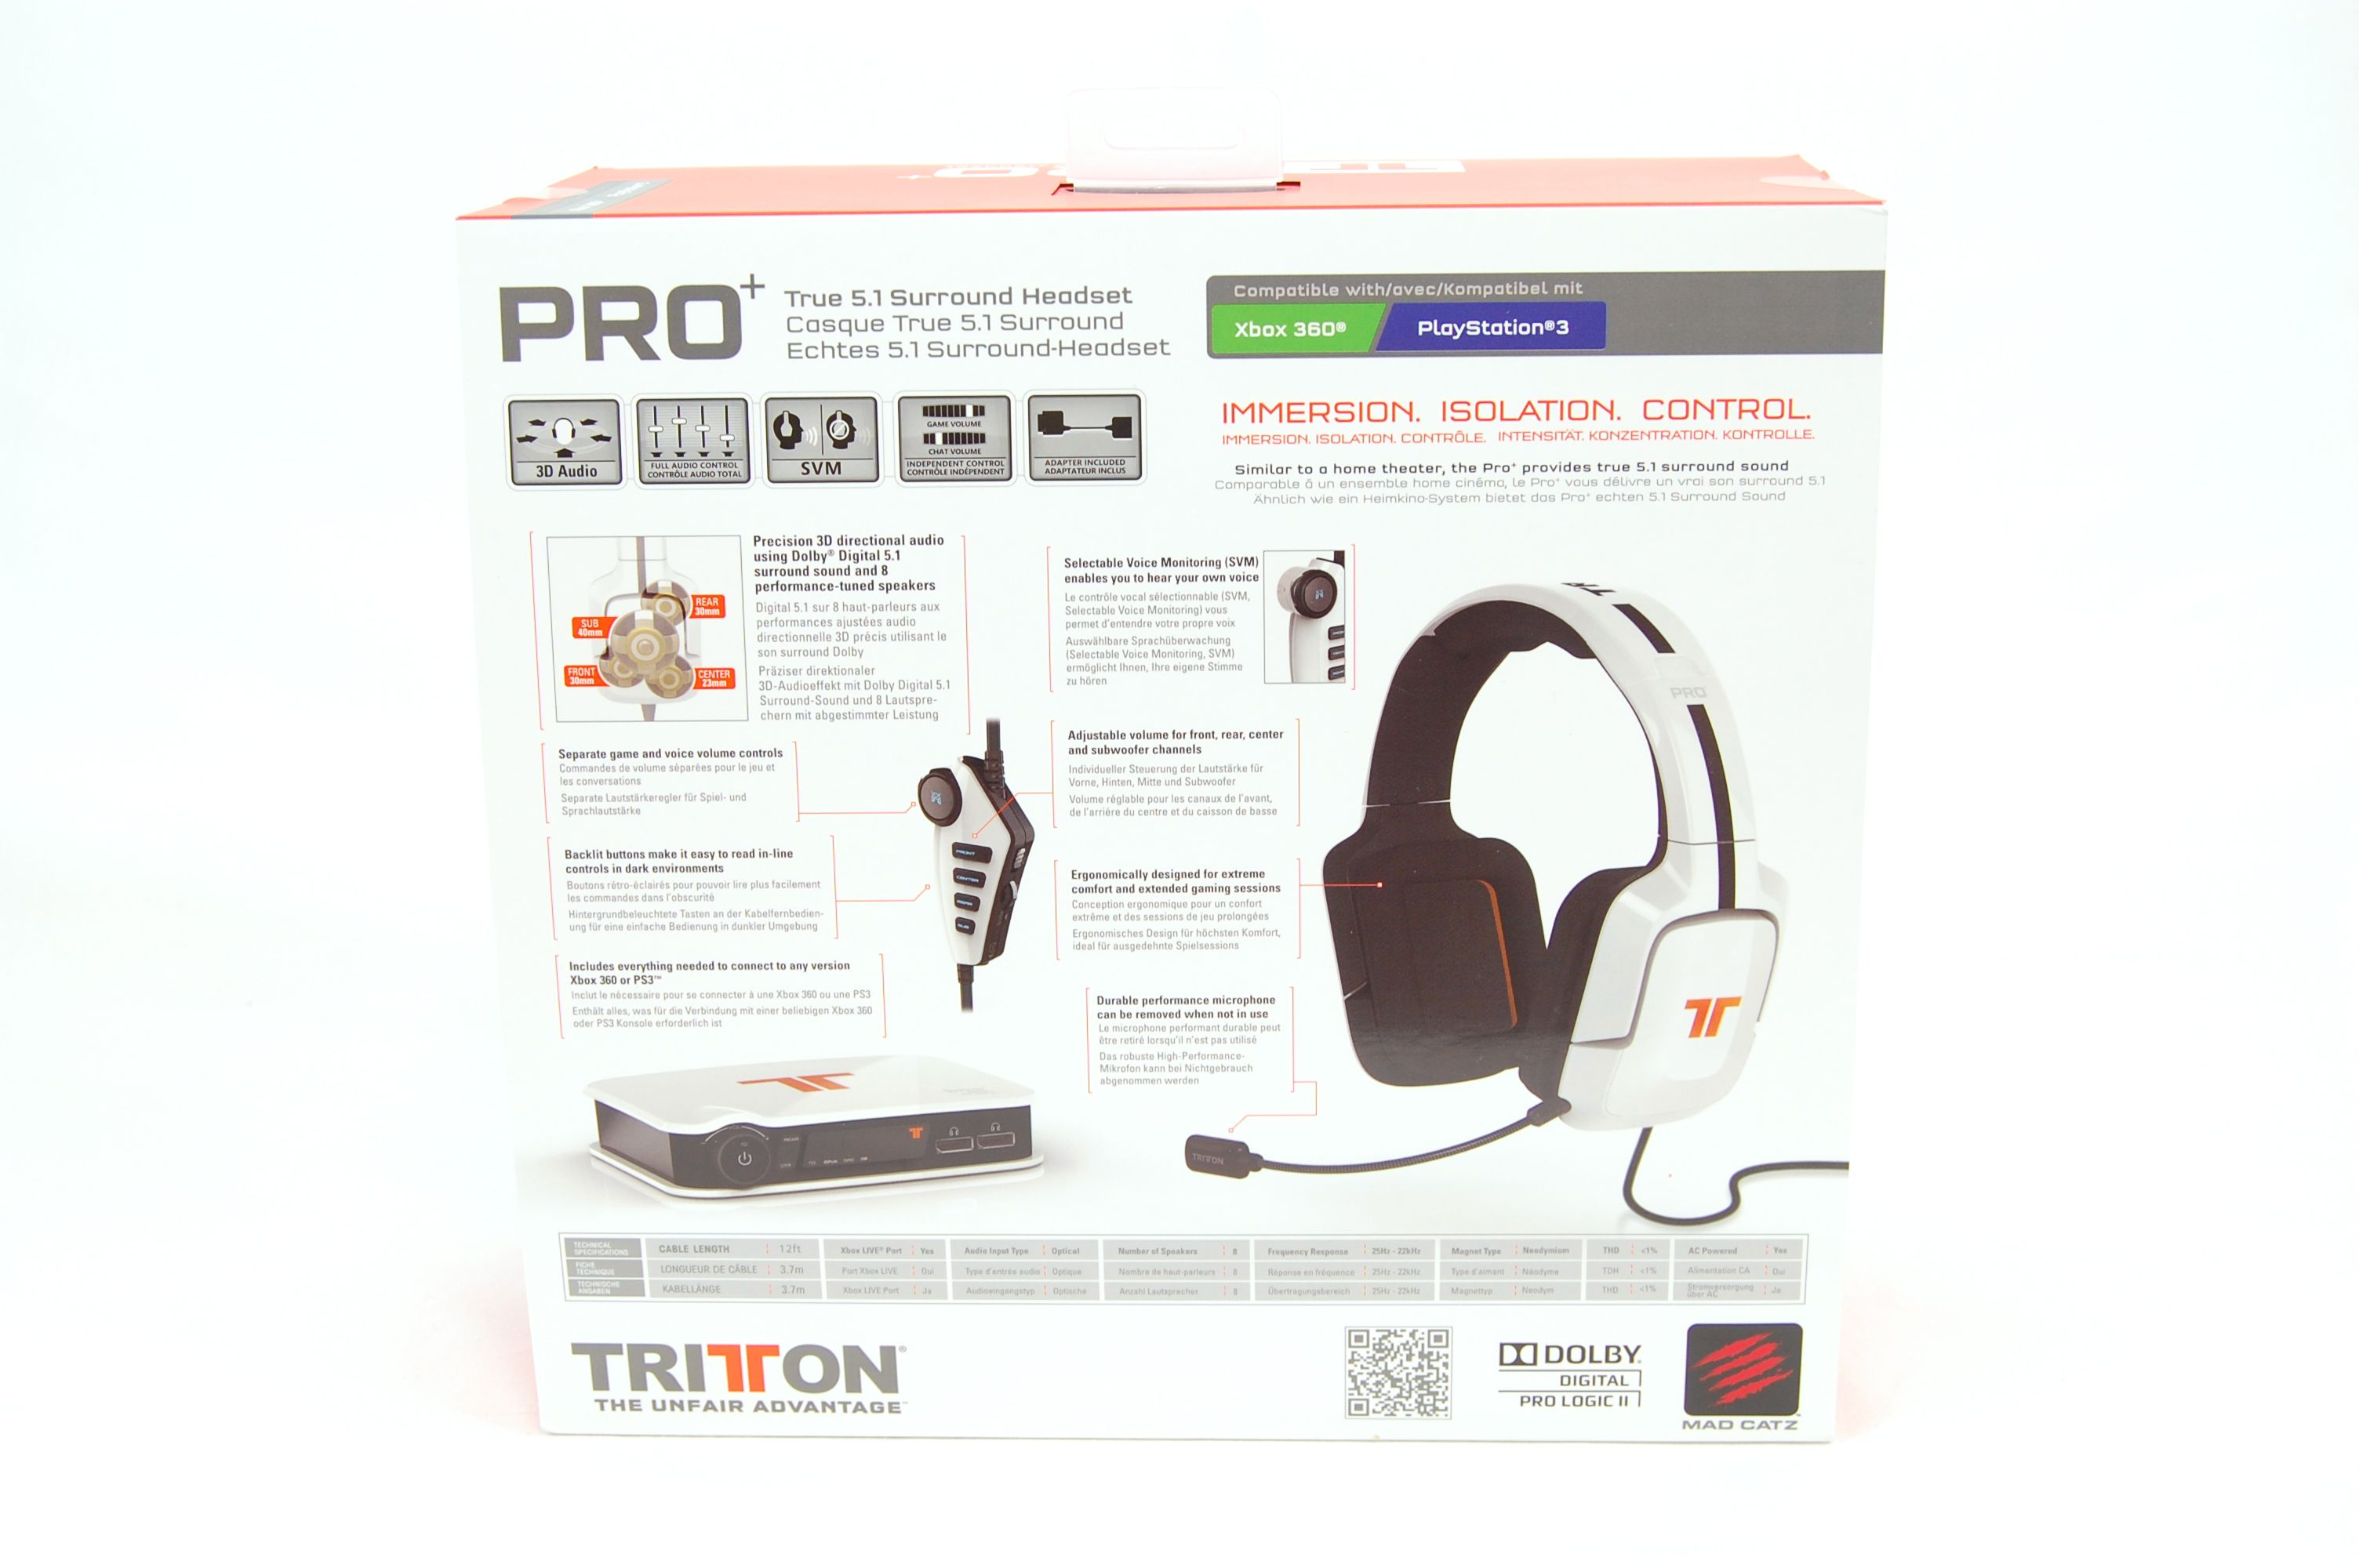 Tritton by MadCatz Pro+ 5.1 Surround Gaming Headset Review - Packaging Box Back